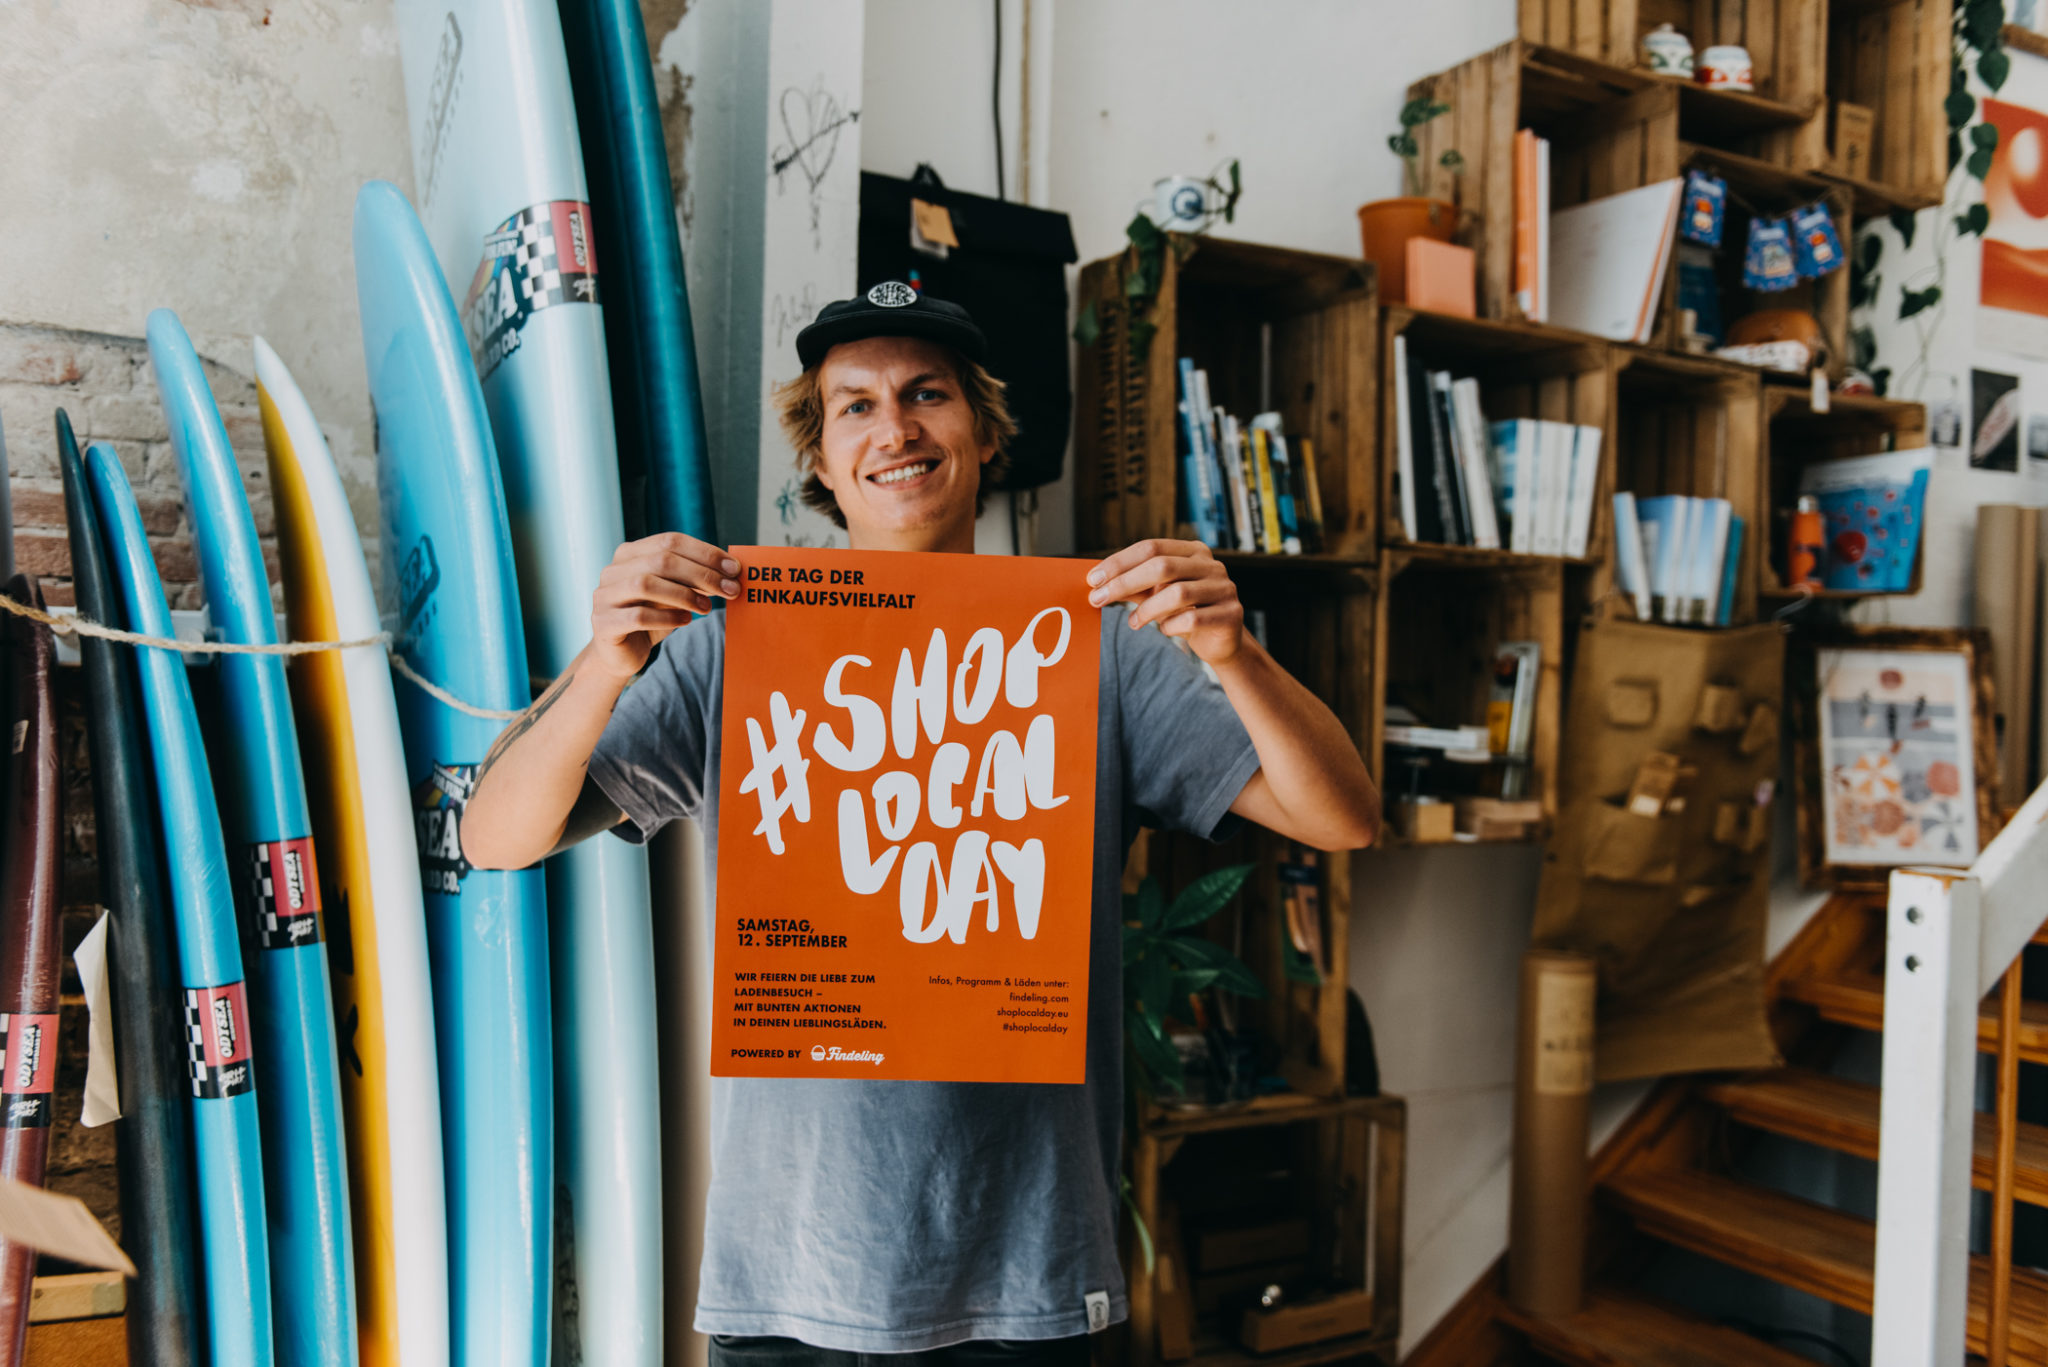 A store owner is showing the Shop Local Day poster